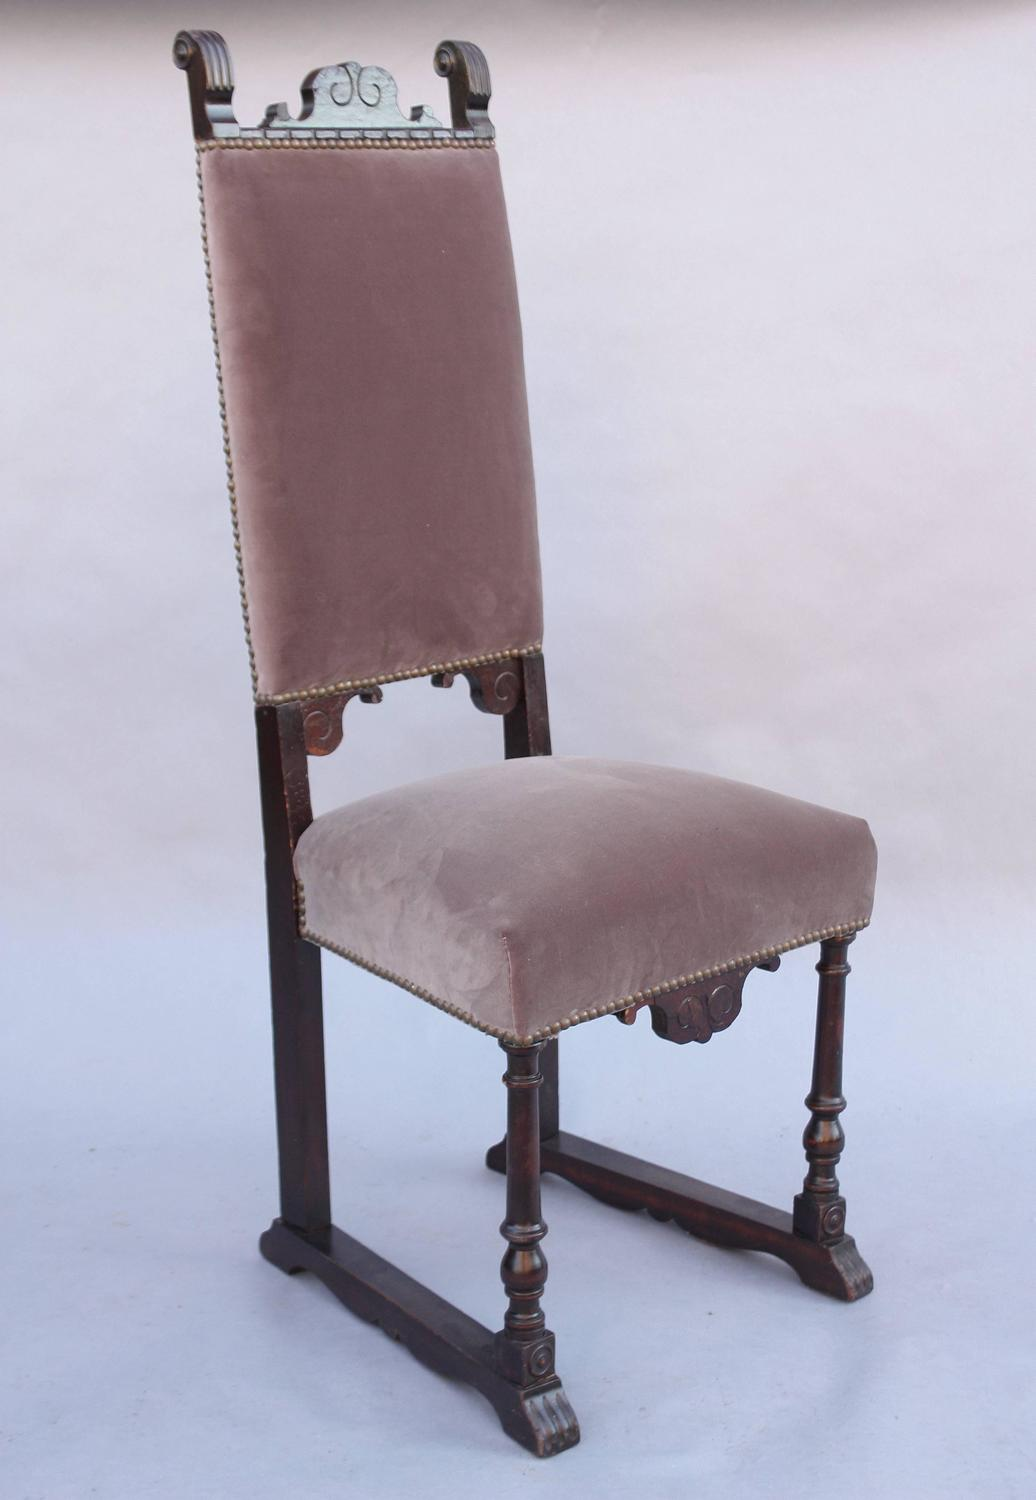 1920s Spanish Revival Side Chair For Sale at 1stdibs